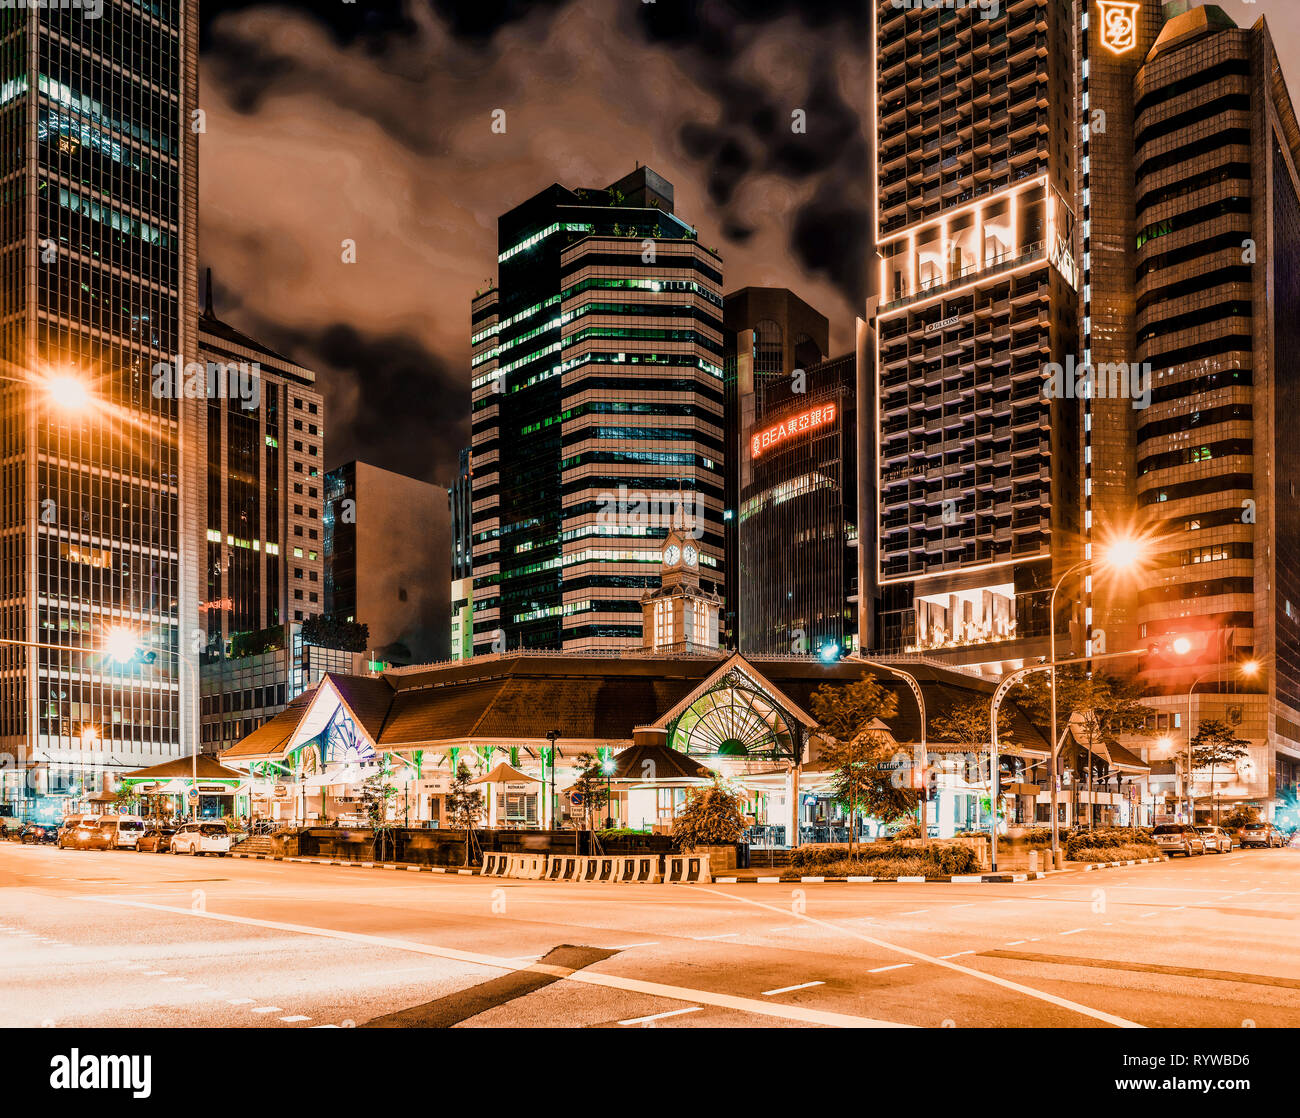 Singapore, Singapore - February 29, 2016: Skyscrapers and Telok Ayer Market at night. It is a food center in the Downtown Core of Singapore. - Stock Image